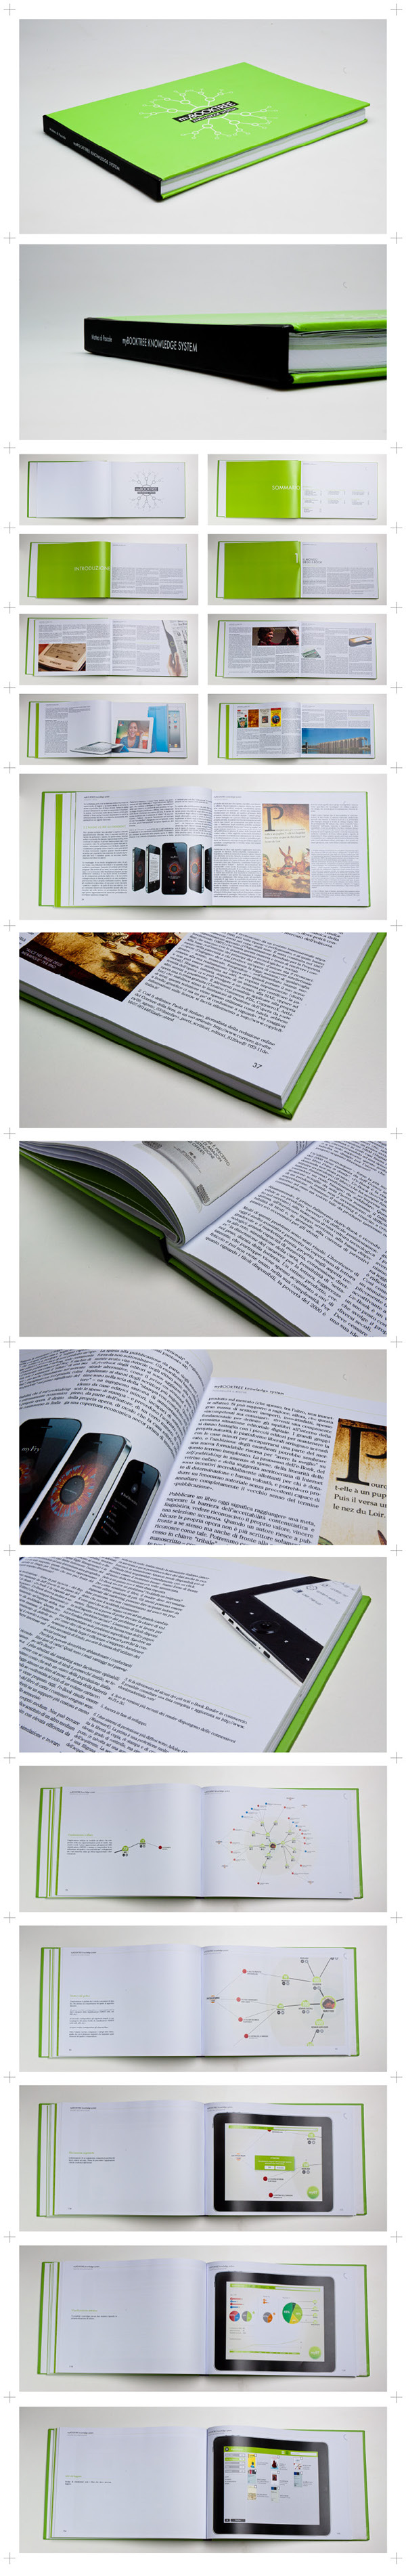 motion graphics book e-book video knowledge Tree  myBOOKTREE iPad tablet smartphones ui design User Experience Design Interface